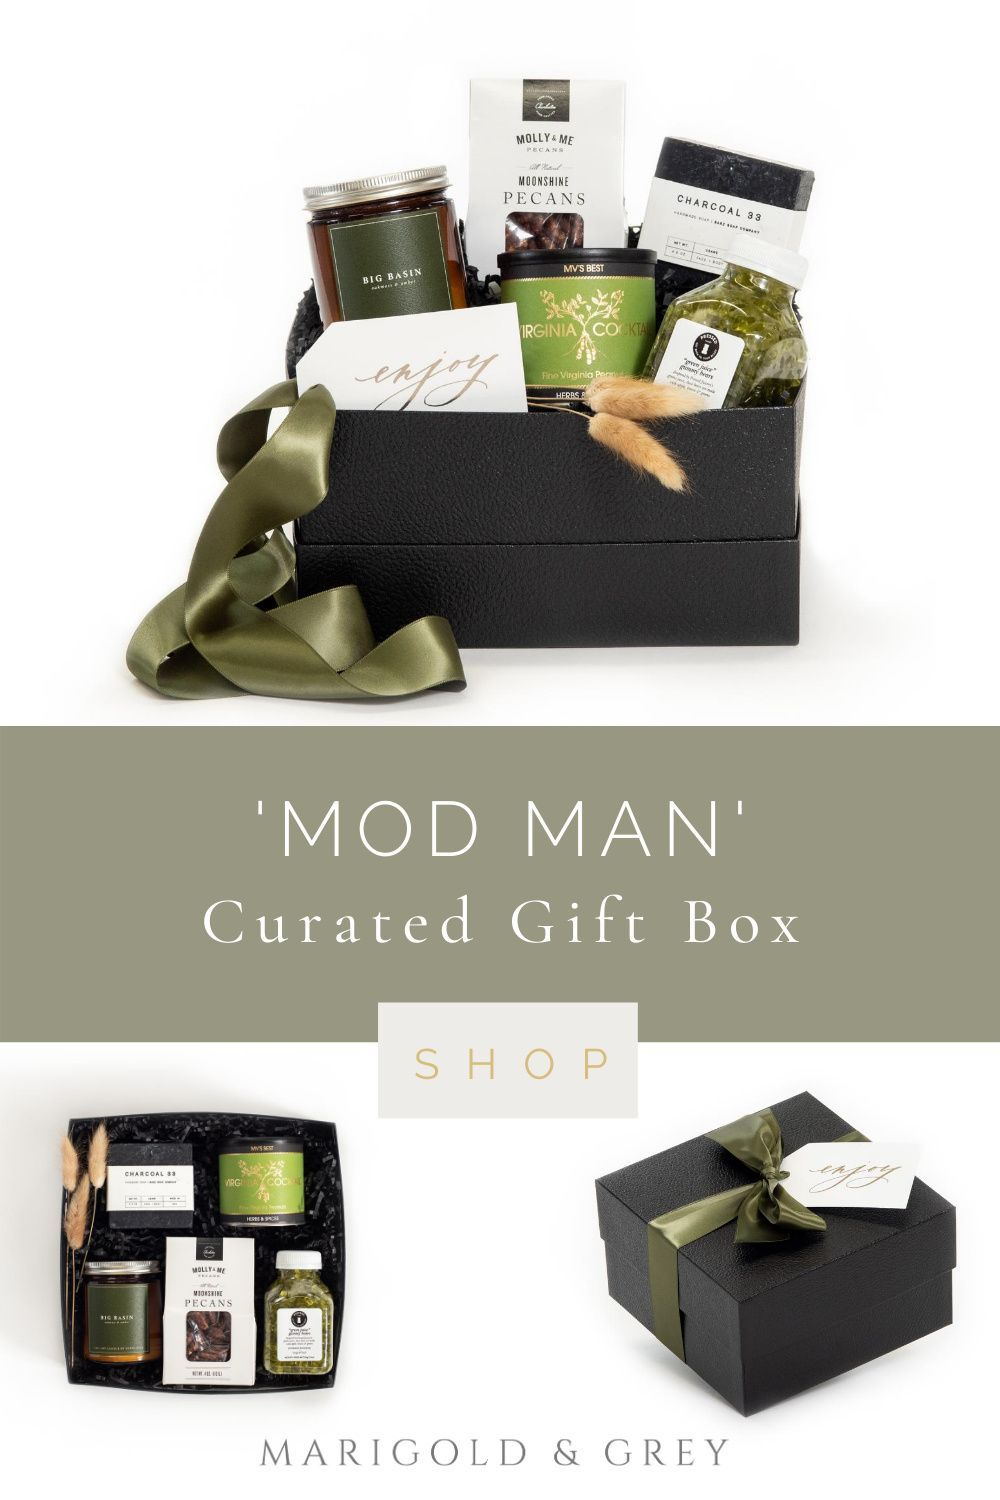 Mod Man in 2020 Gifts, Gift baskets for men, Calligraphy